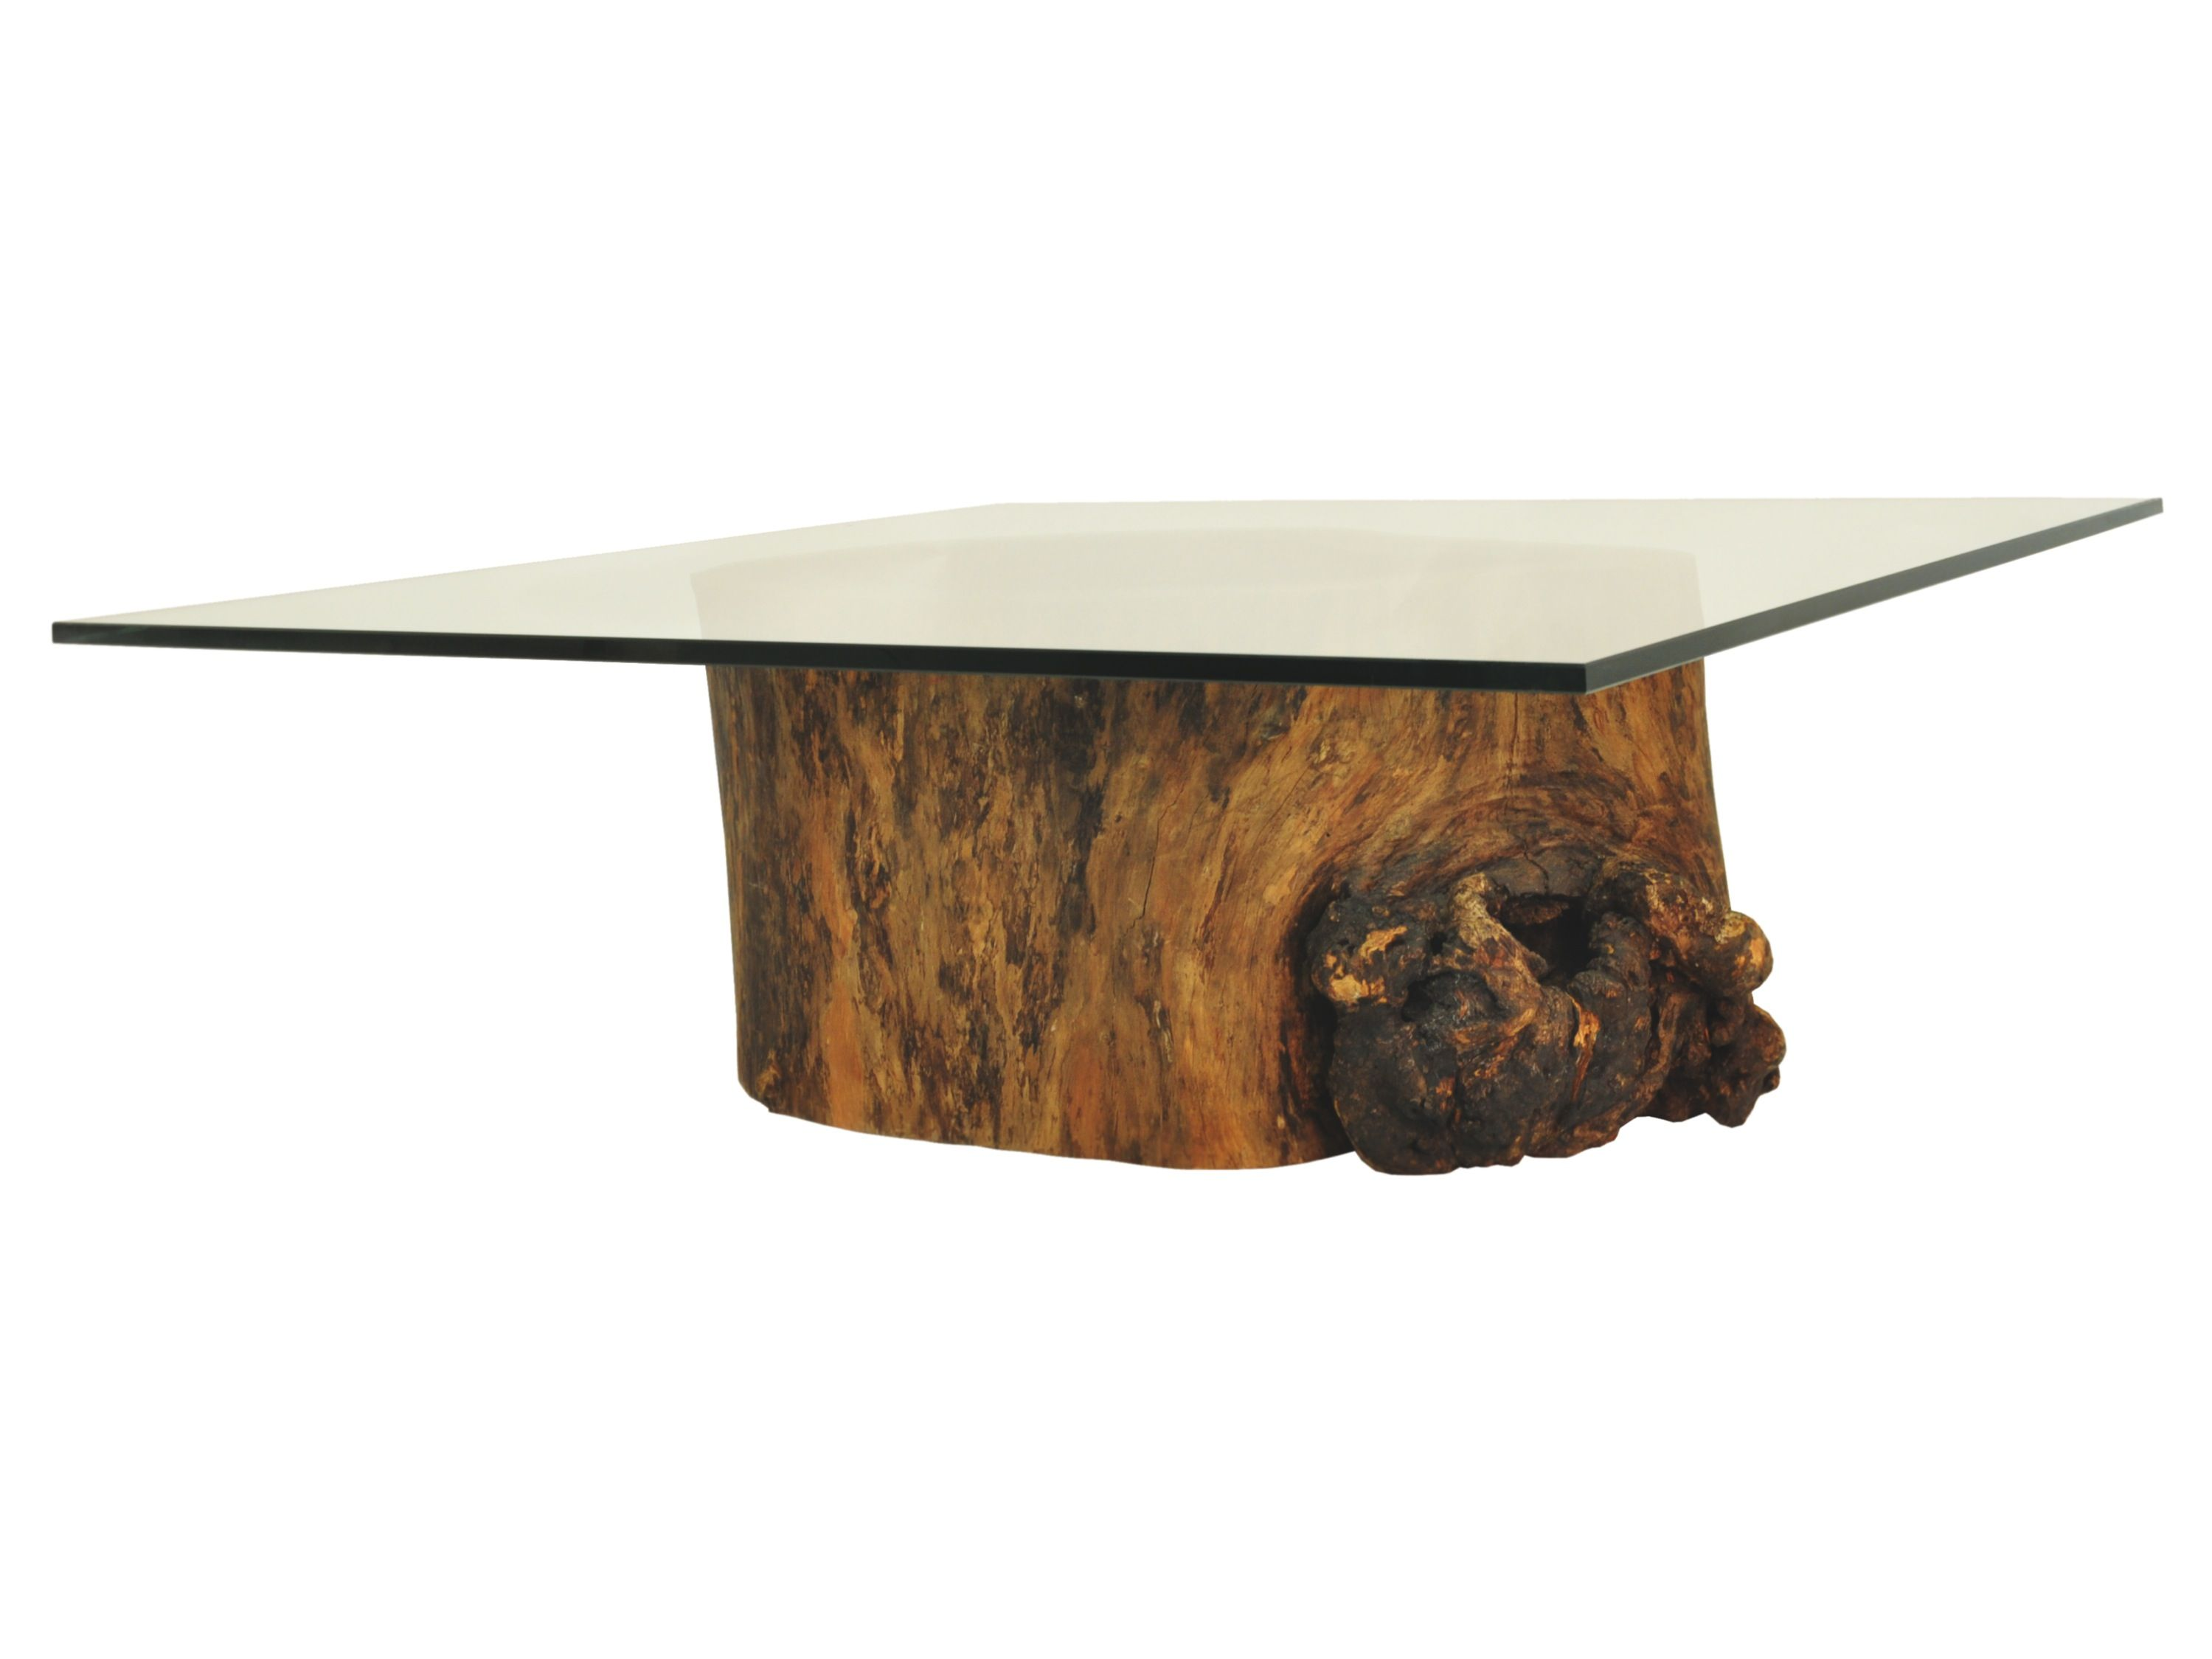 Hollow Trunk Coffee Table Square Glass Top Coffee table base made